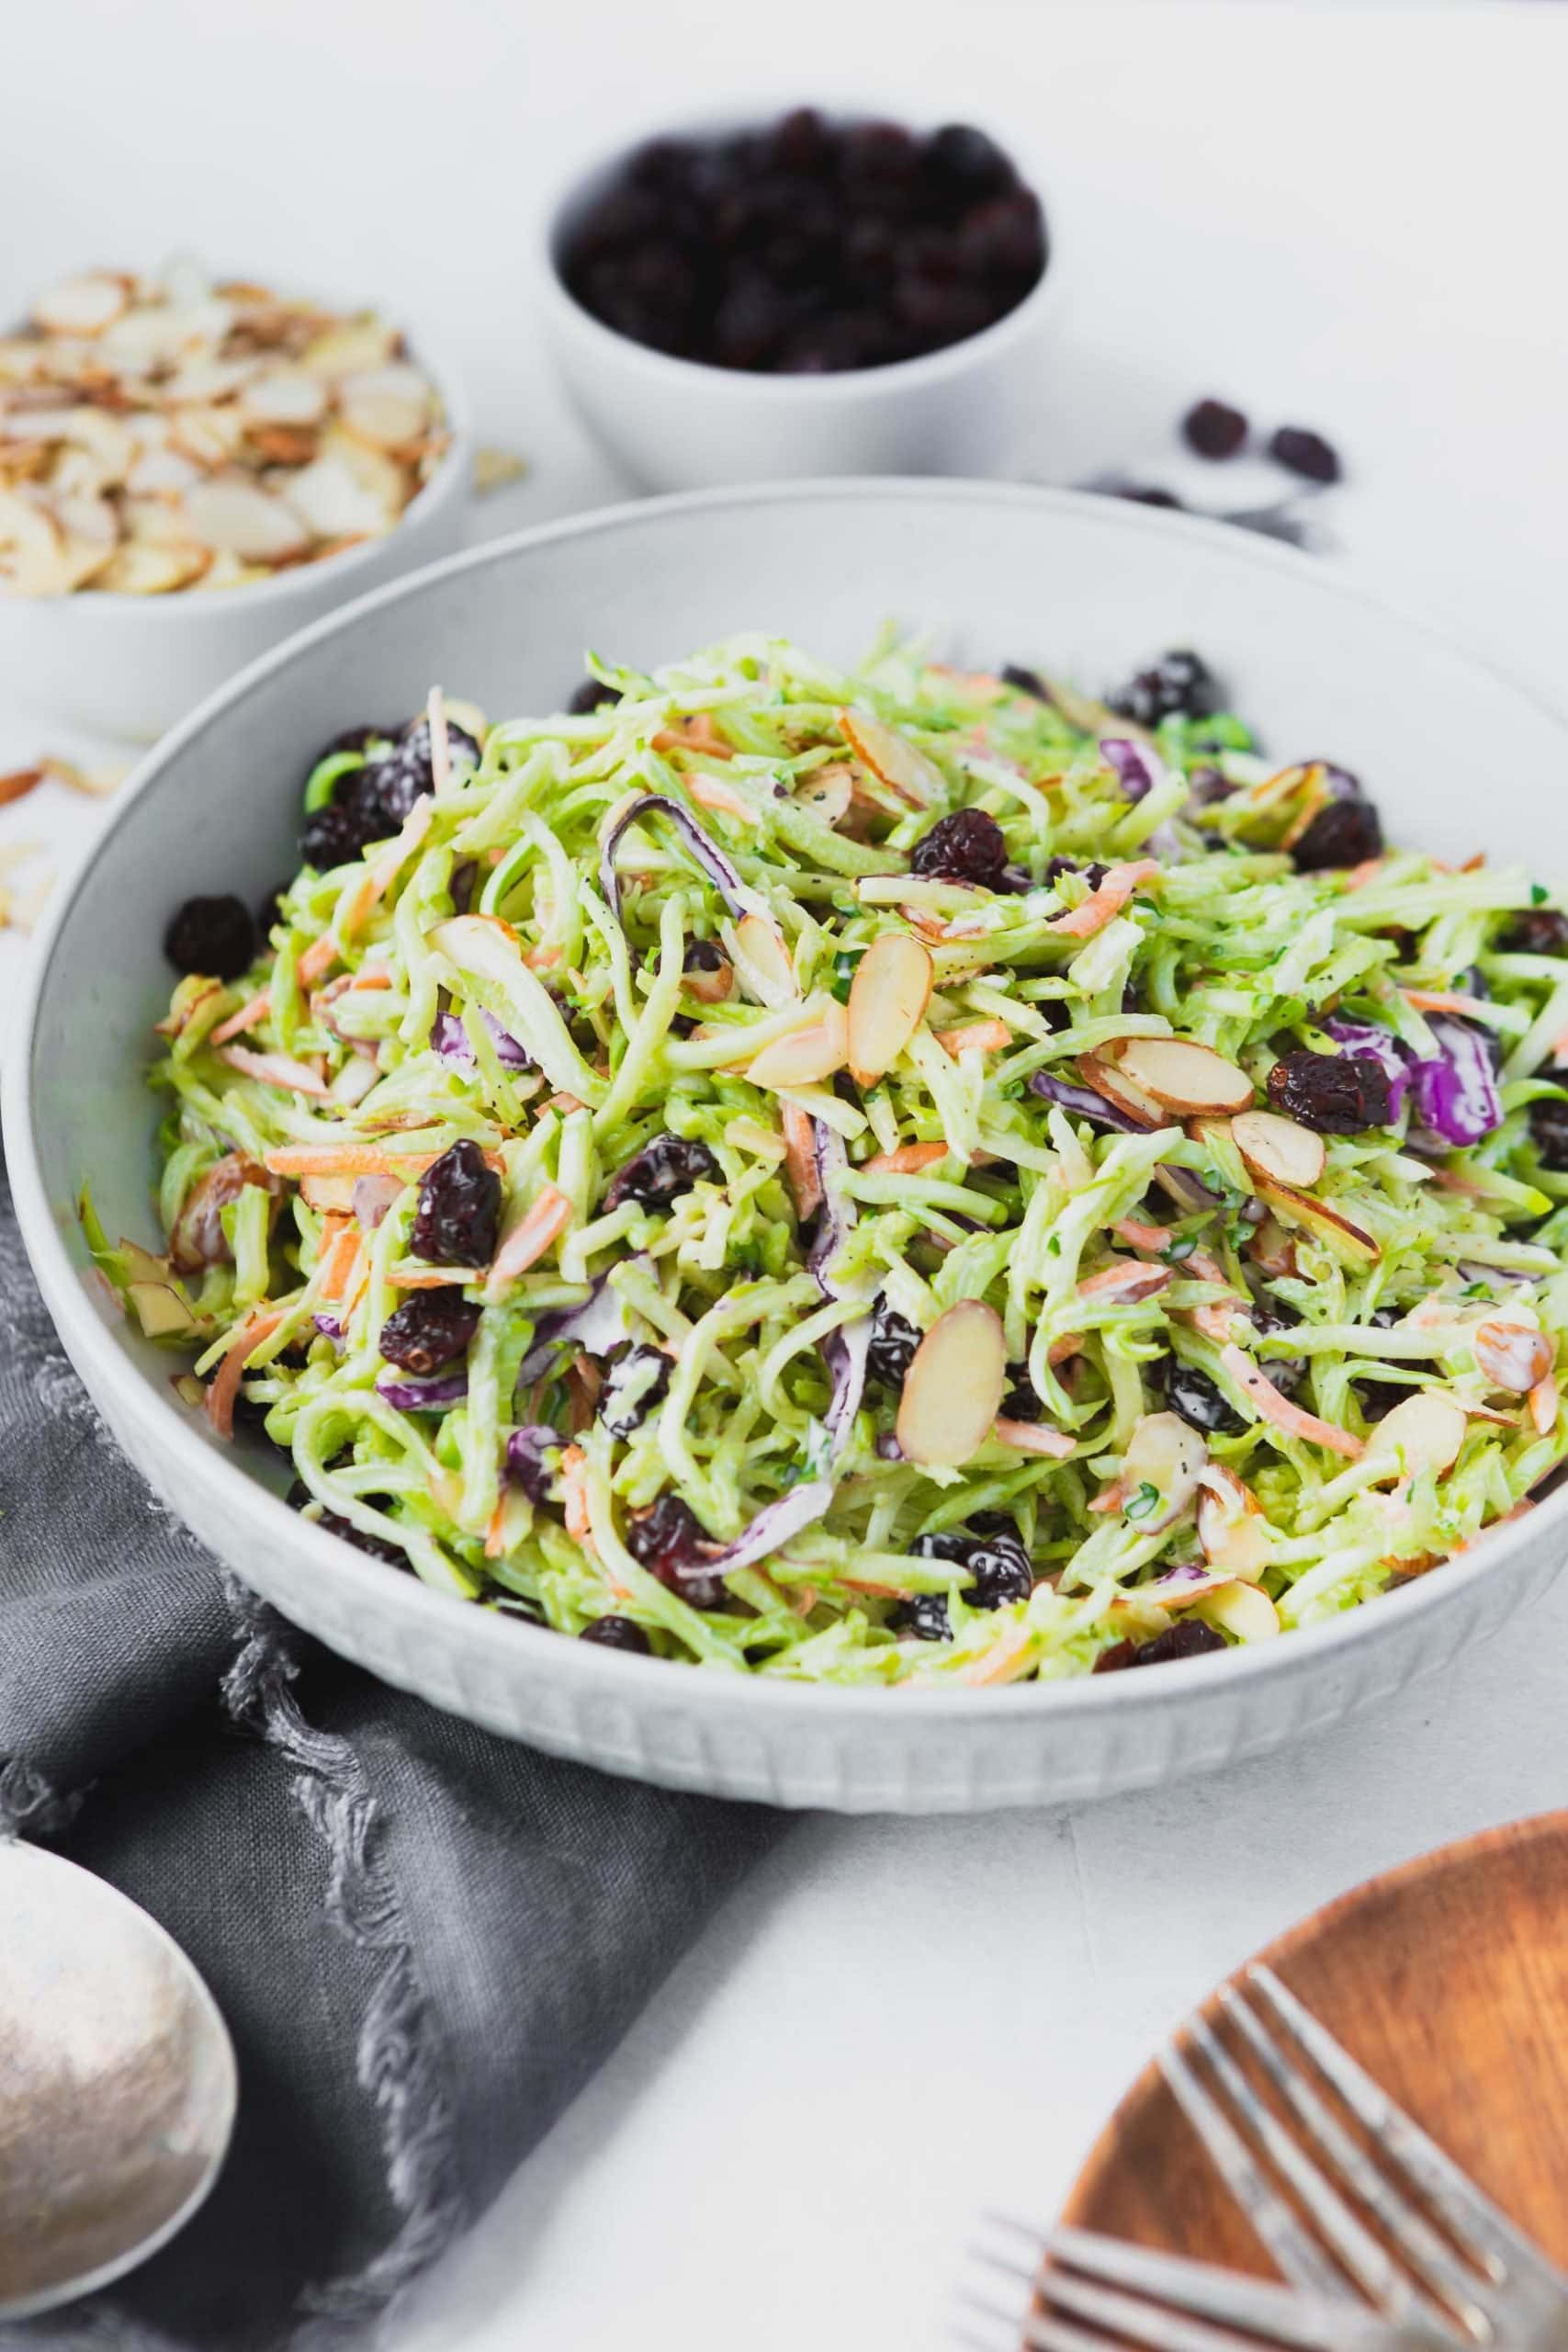 a photo of a bowl full of broccoli slaw topped with sliced almonds and plump raisins all in a large white bowl.